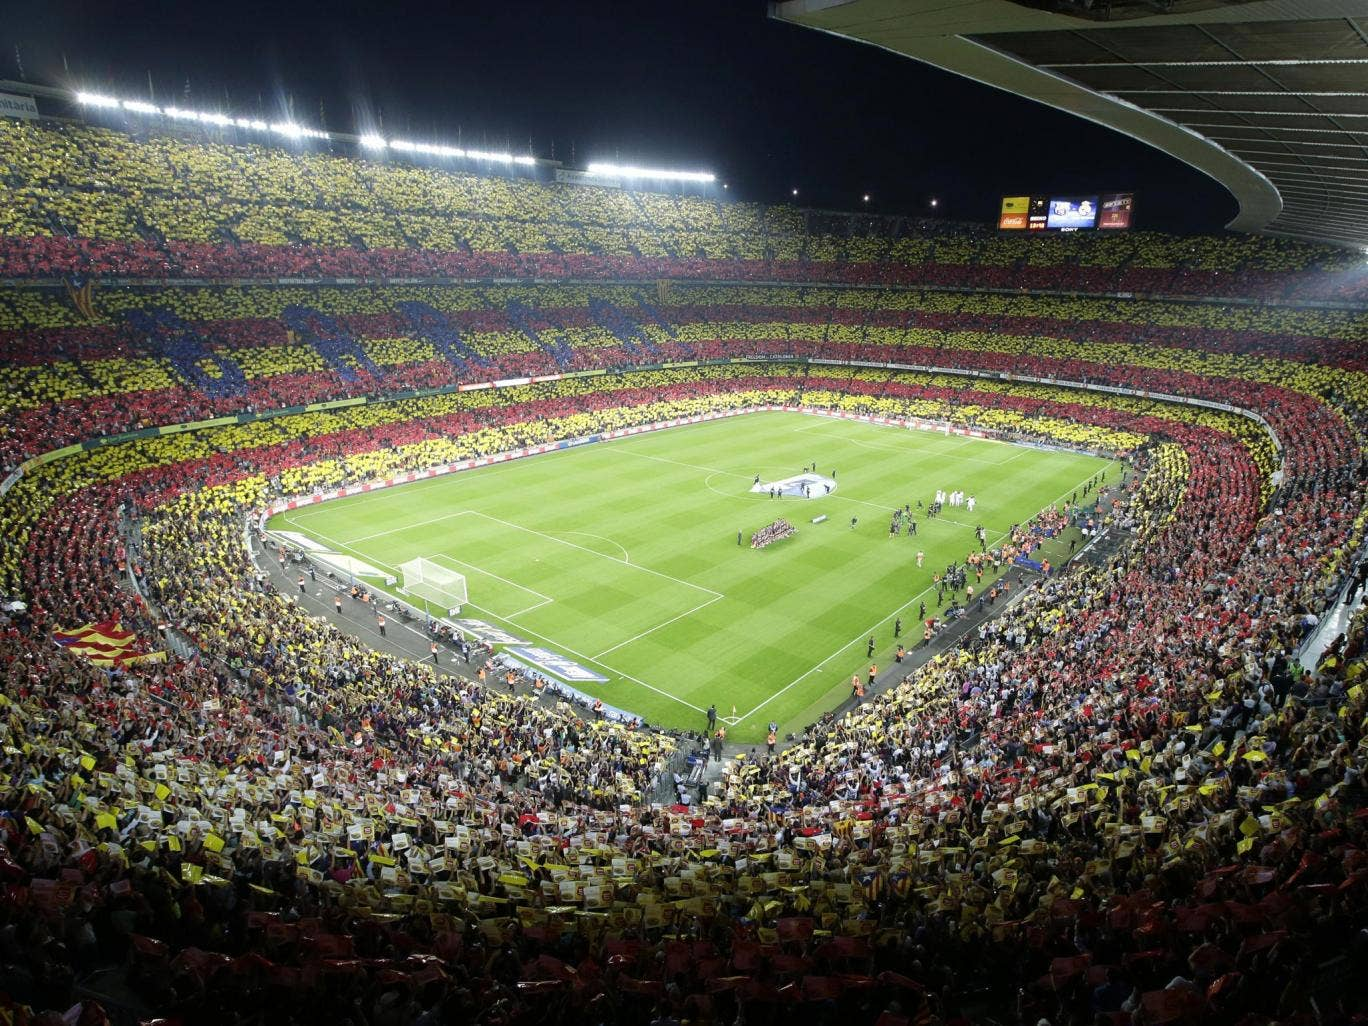 The 'Camp Nou redo' will increase the stadium's income in terms of hospitality, which has been a problem in the past